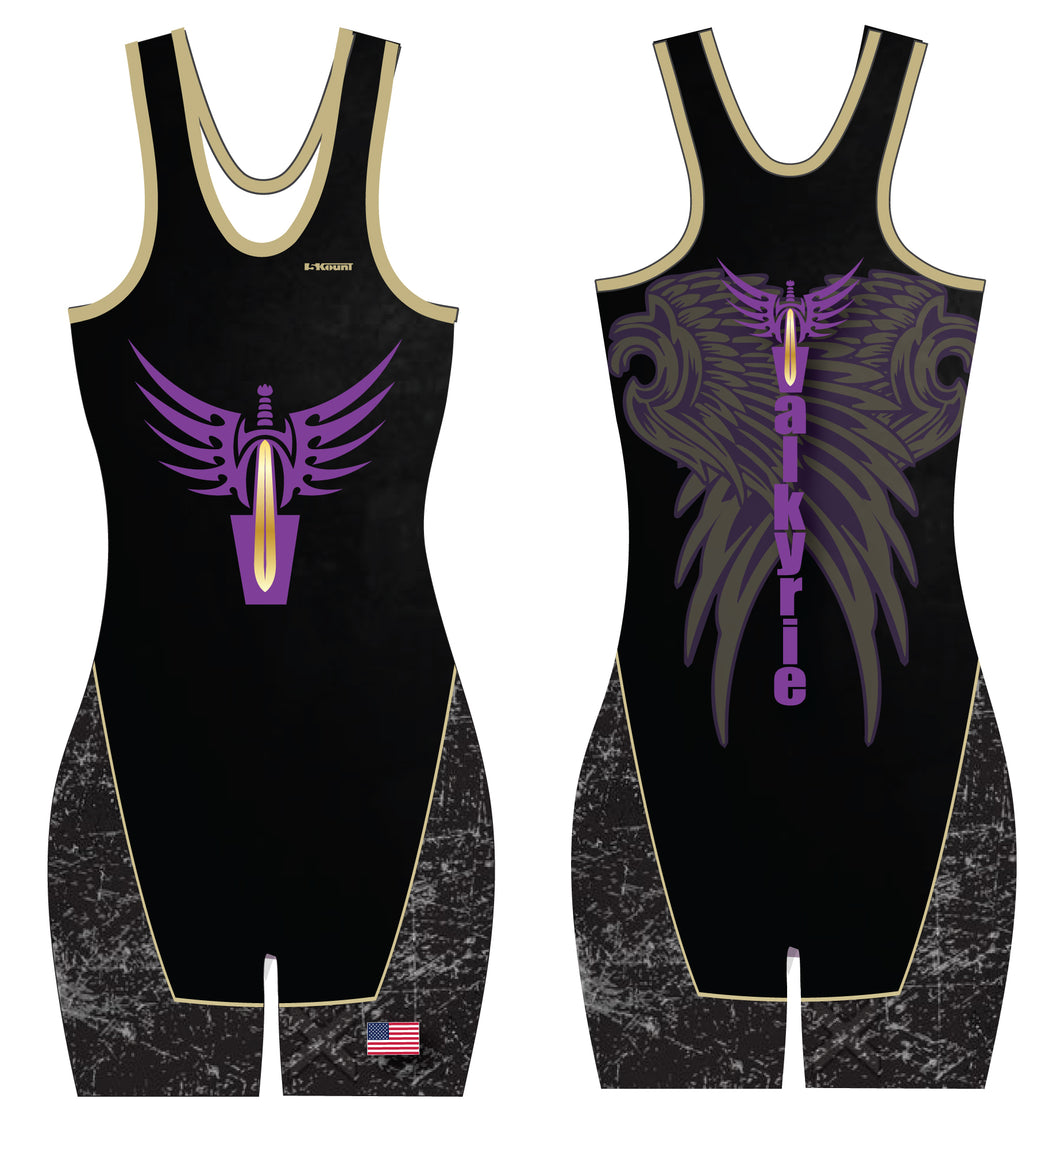 Valkyrie Girls Wrestling Sublimated Singlet - Black - 5KounT